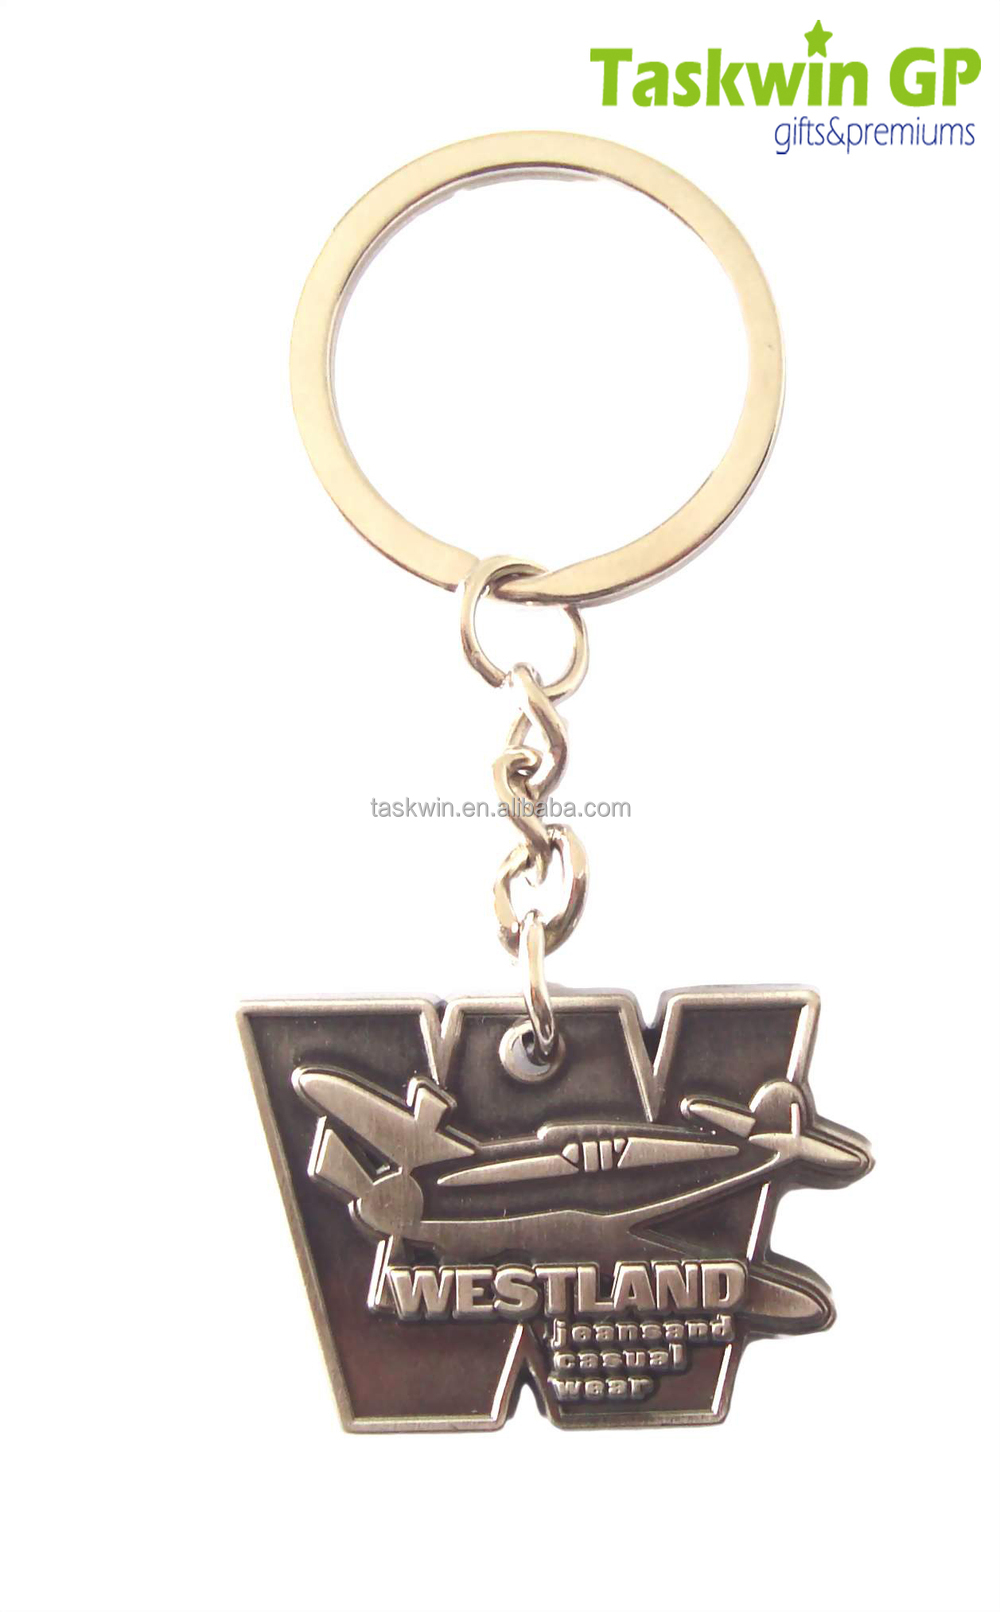 Hight quality antique brass die cast metal keychain